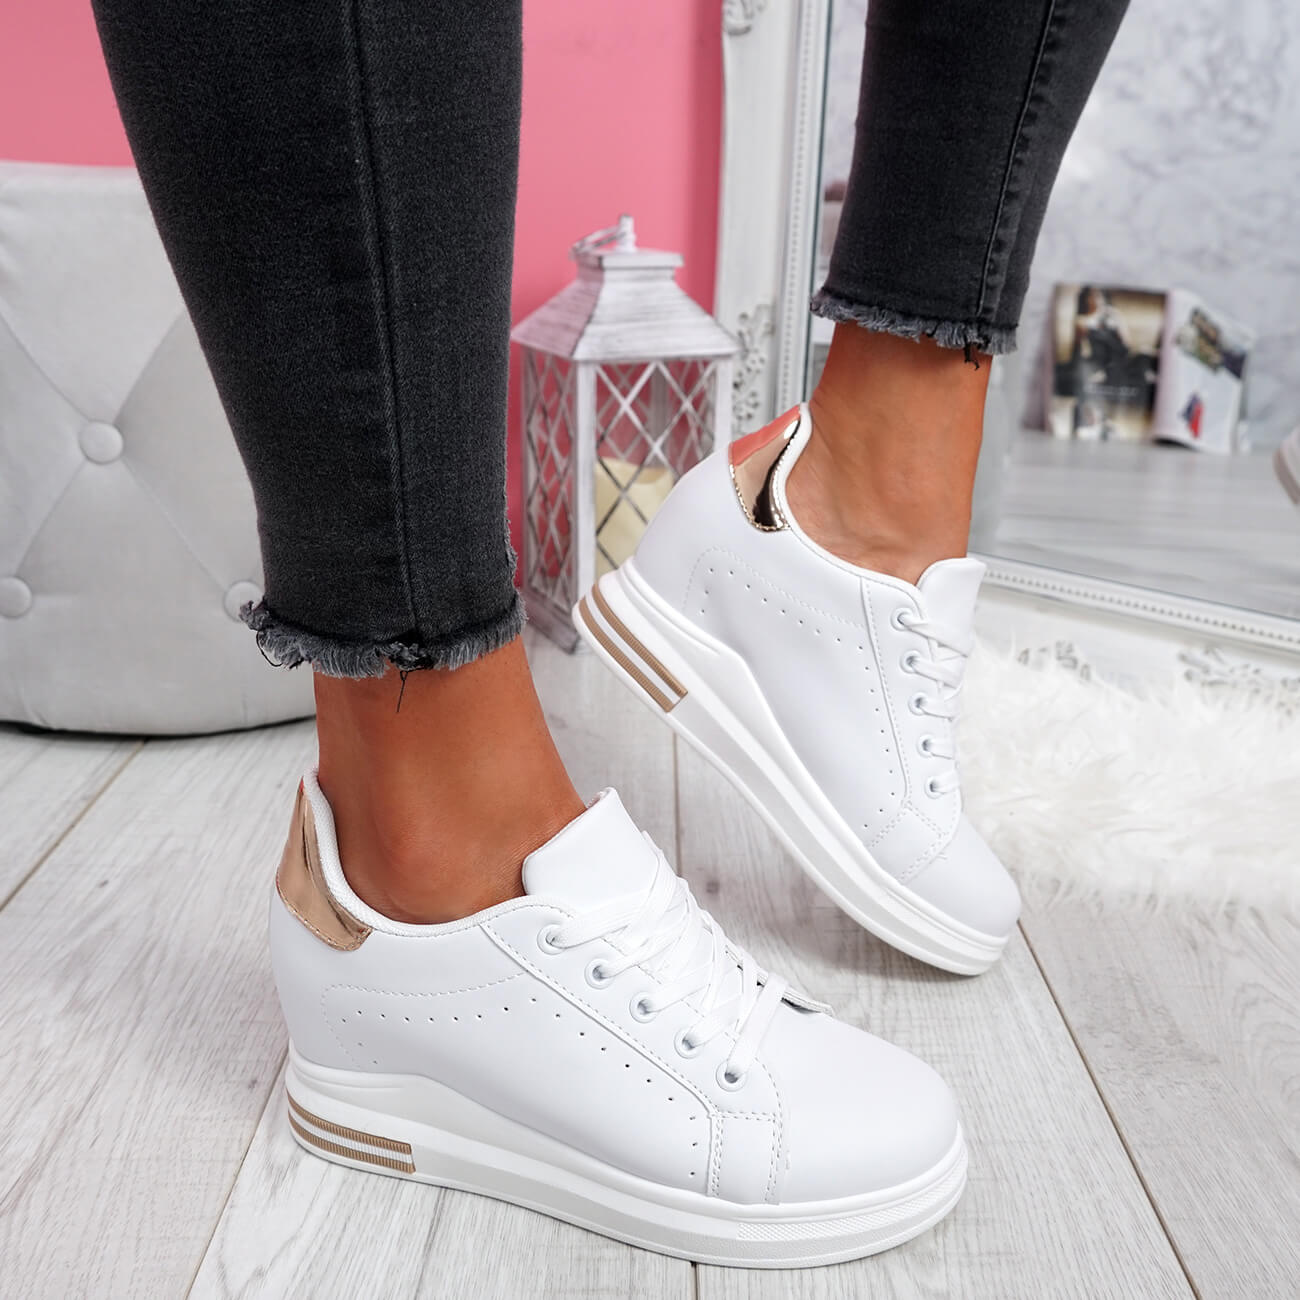 WOMENS-LADIES-LACE-UP-WEDGE-TRAINERS-HEEL-SNEAKERS-SHINY-PARTY-WOMEN-SHOES thumbnail 20